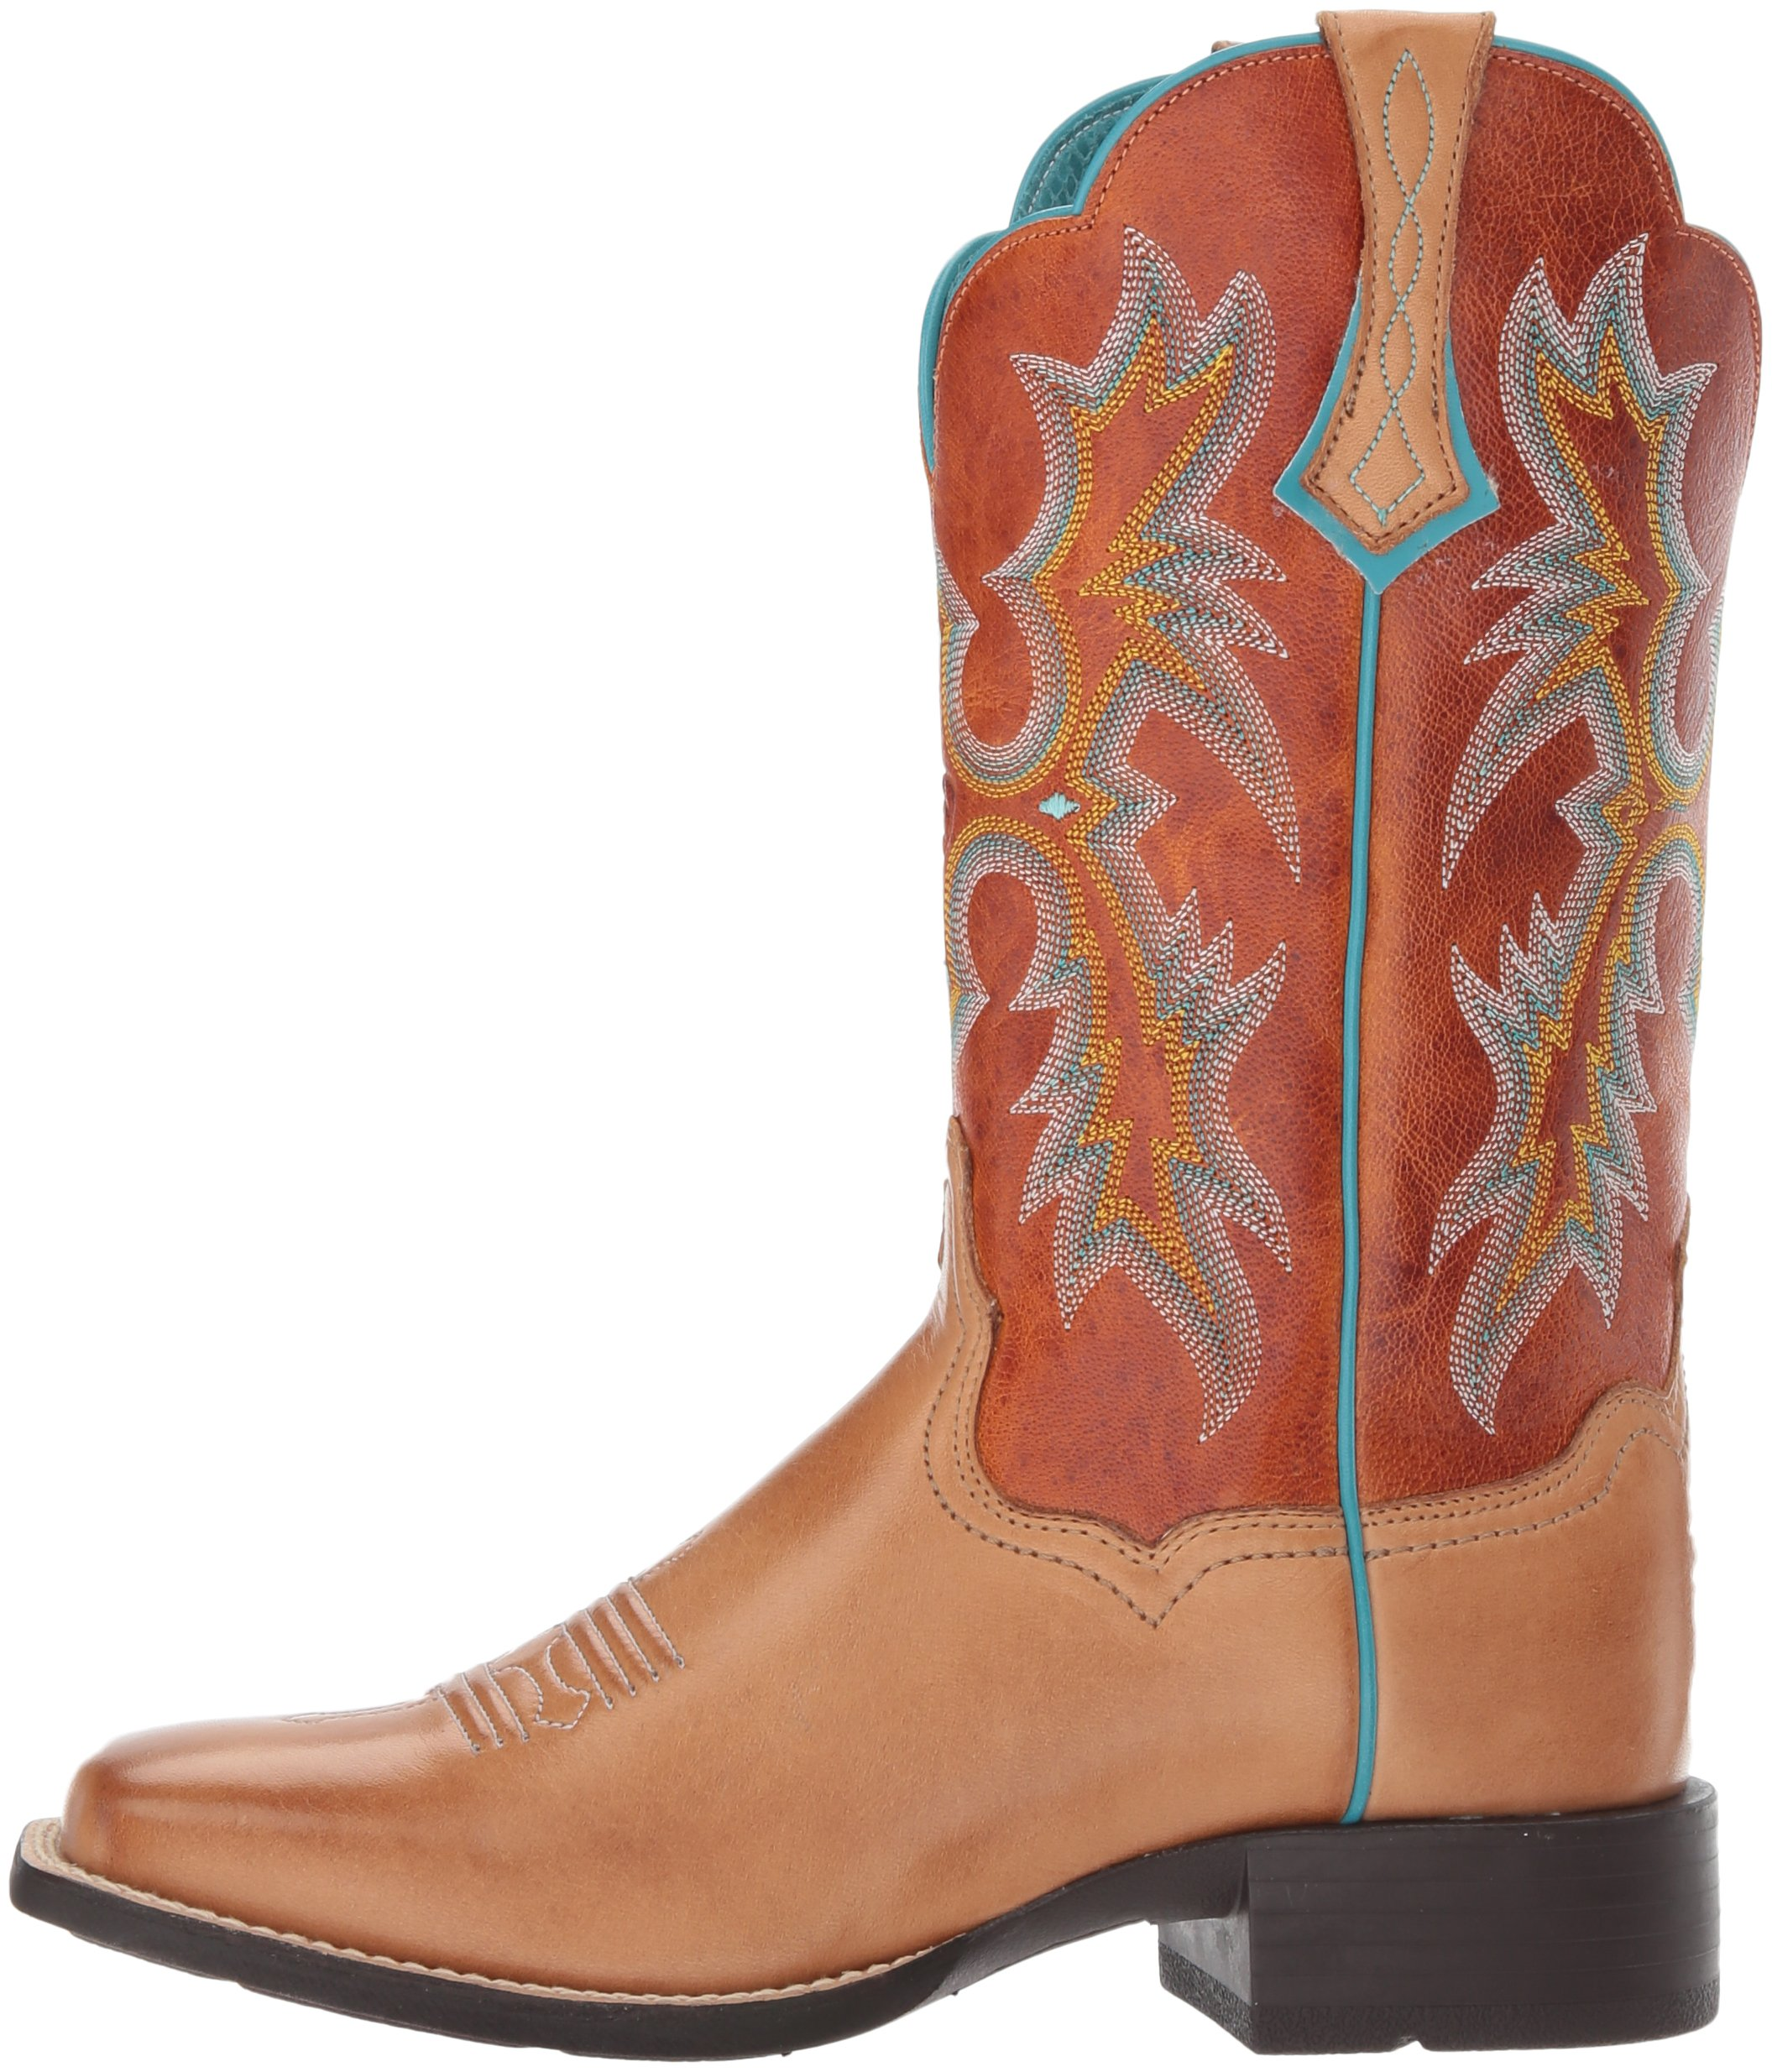 Ariat Women's Tombstone Work Boot, Tack Room Honey, 8.5 B US by Ariat (Image #5)